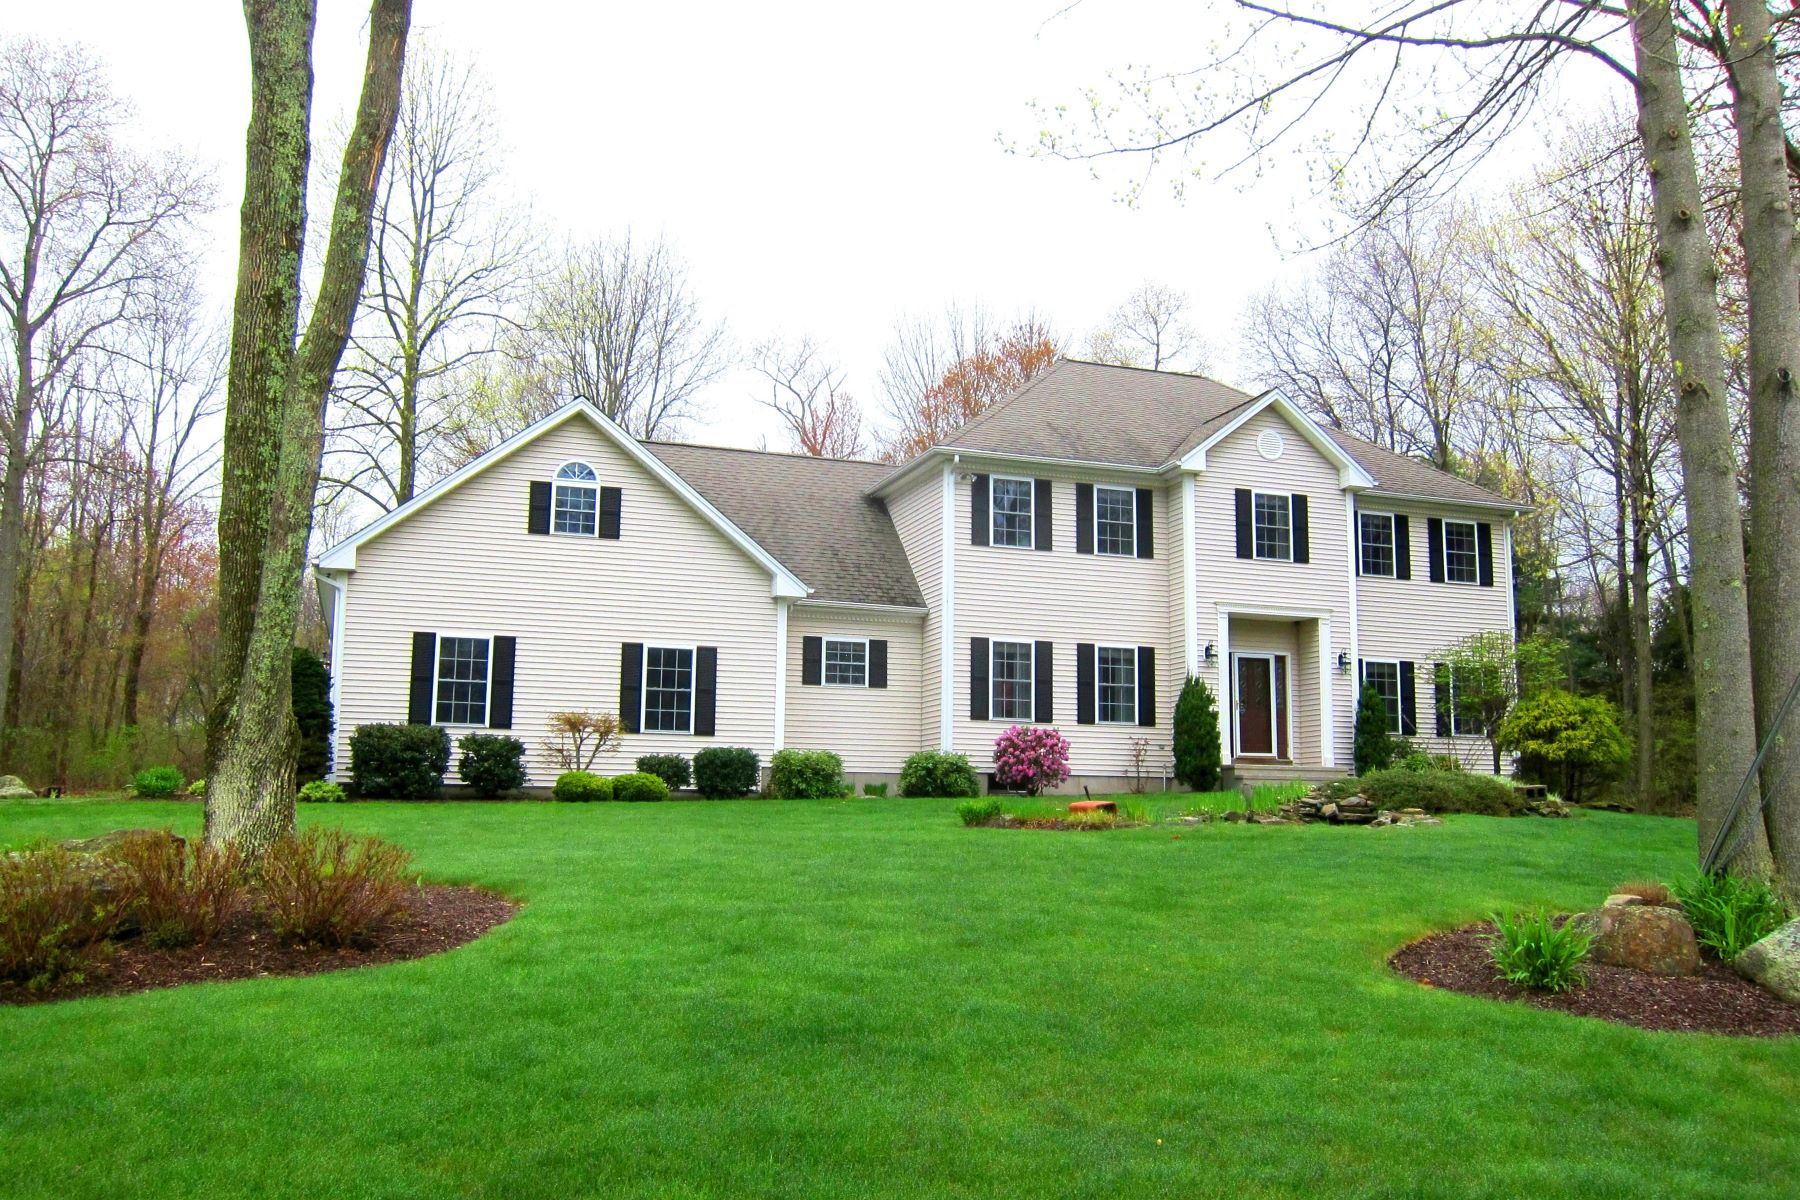 Casa Unifamiliar por un Venta en Park Like 1.5 Acre Lot 15 Lisbon Terrace Oxford, Connecticut 06478 Estados Unidos